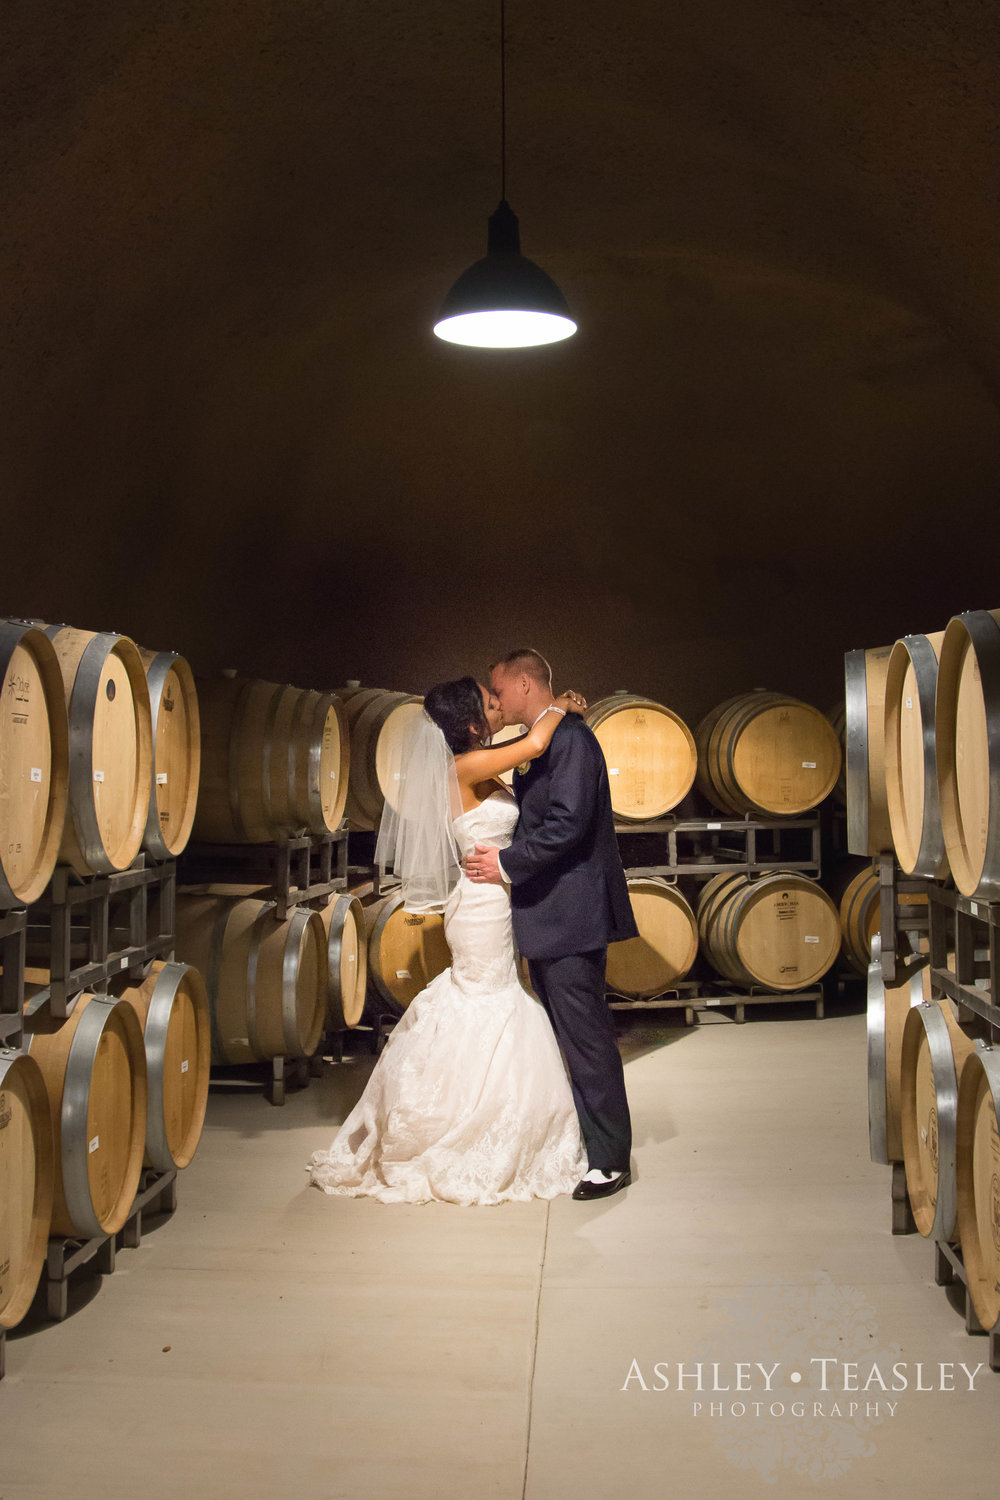 Ashley Teasley Photography- Sacramento Wedding Photographer- Bella Grace Winery 43.jpg